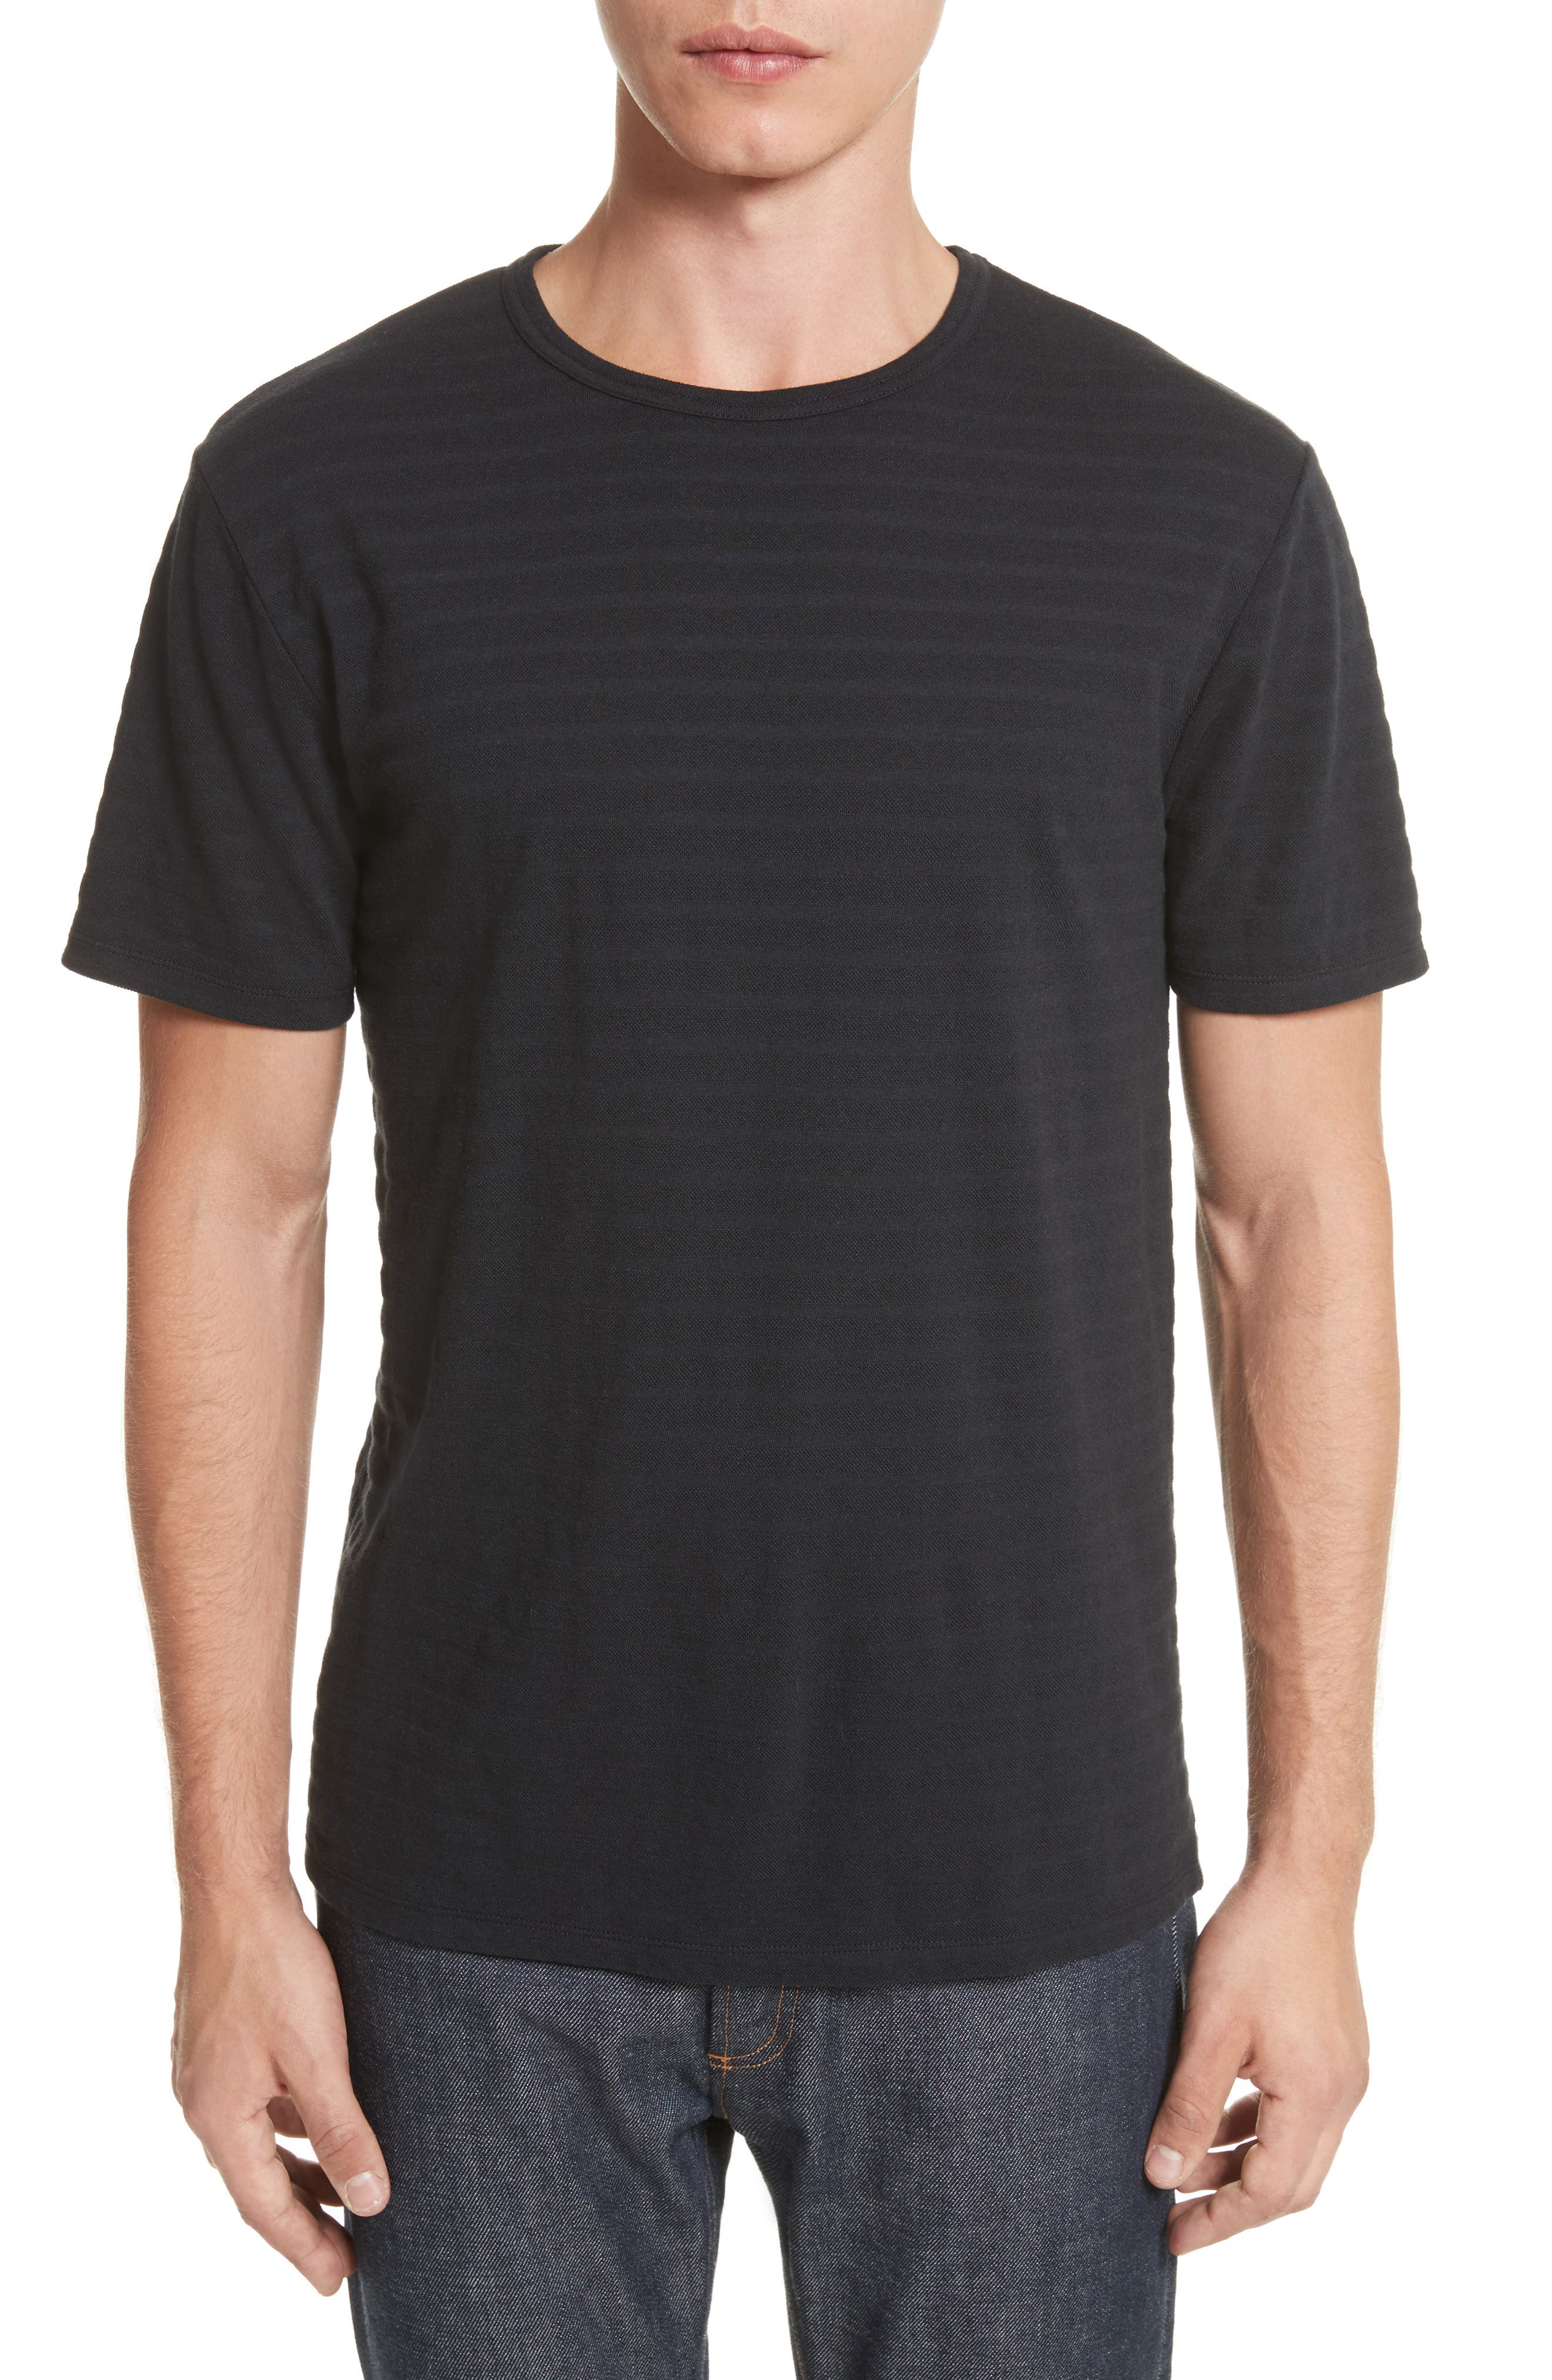 Winston Crewneck T-Shirt,                         Main,                         color, Anthracite